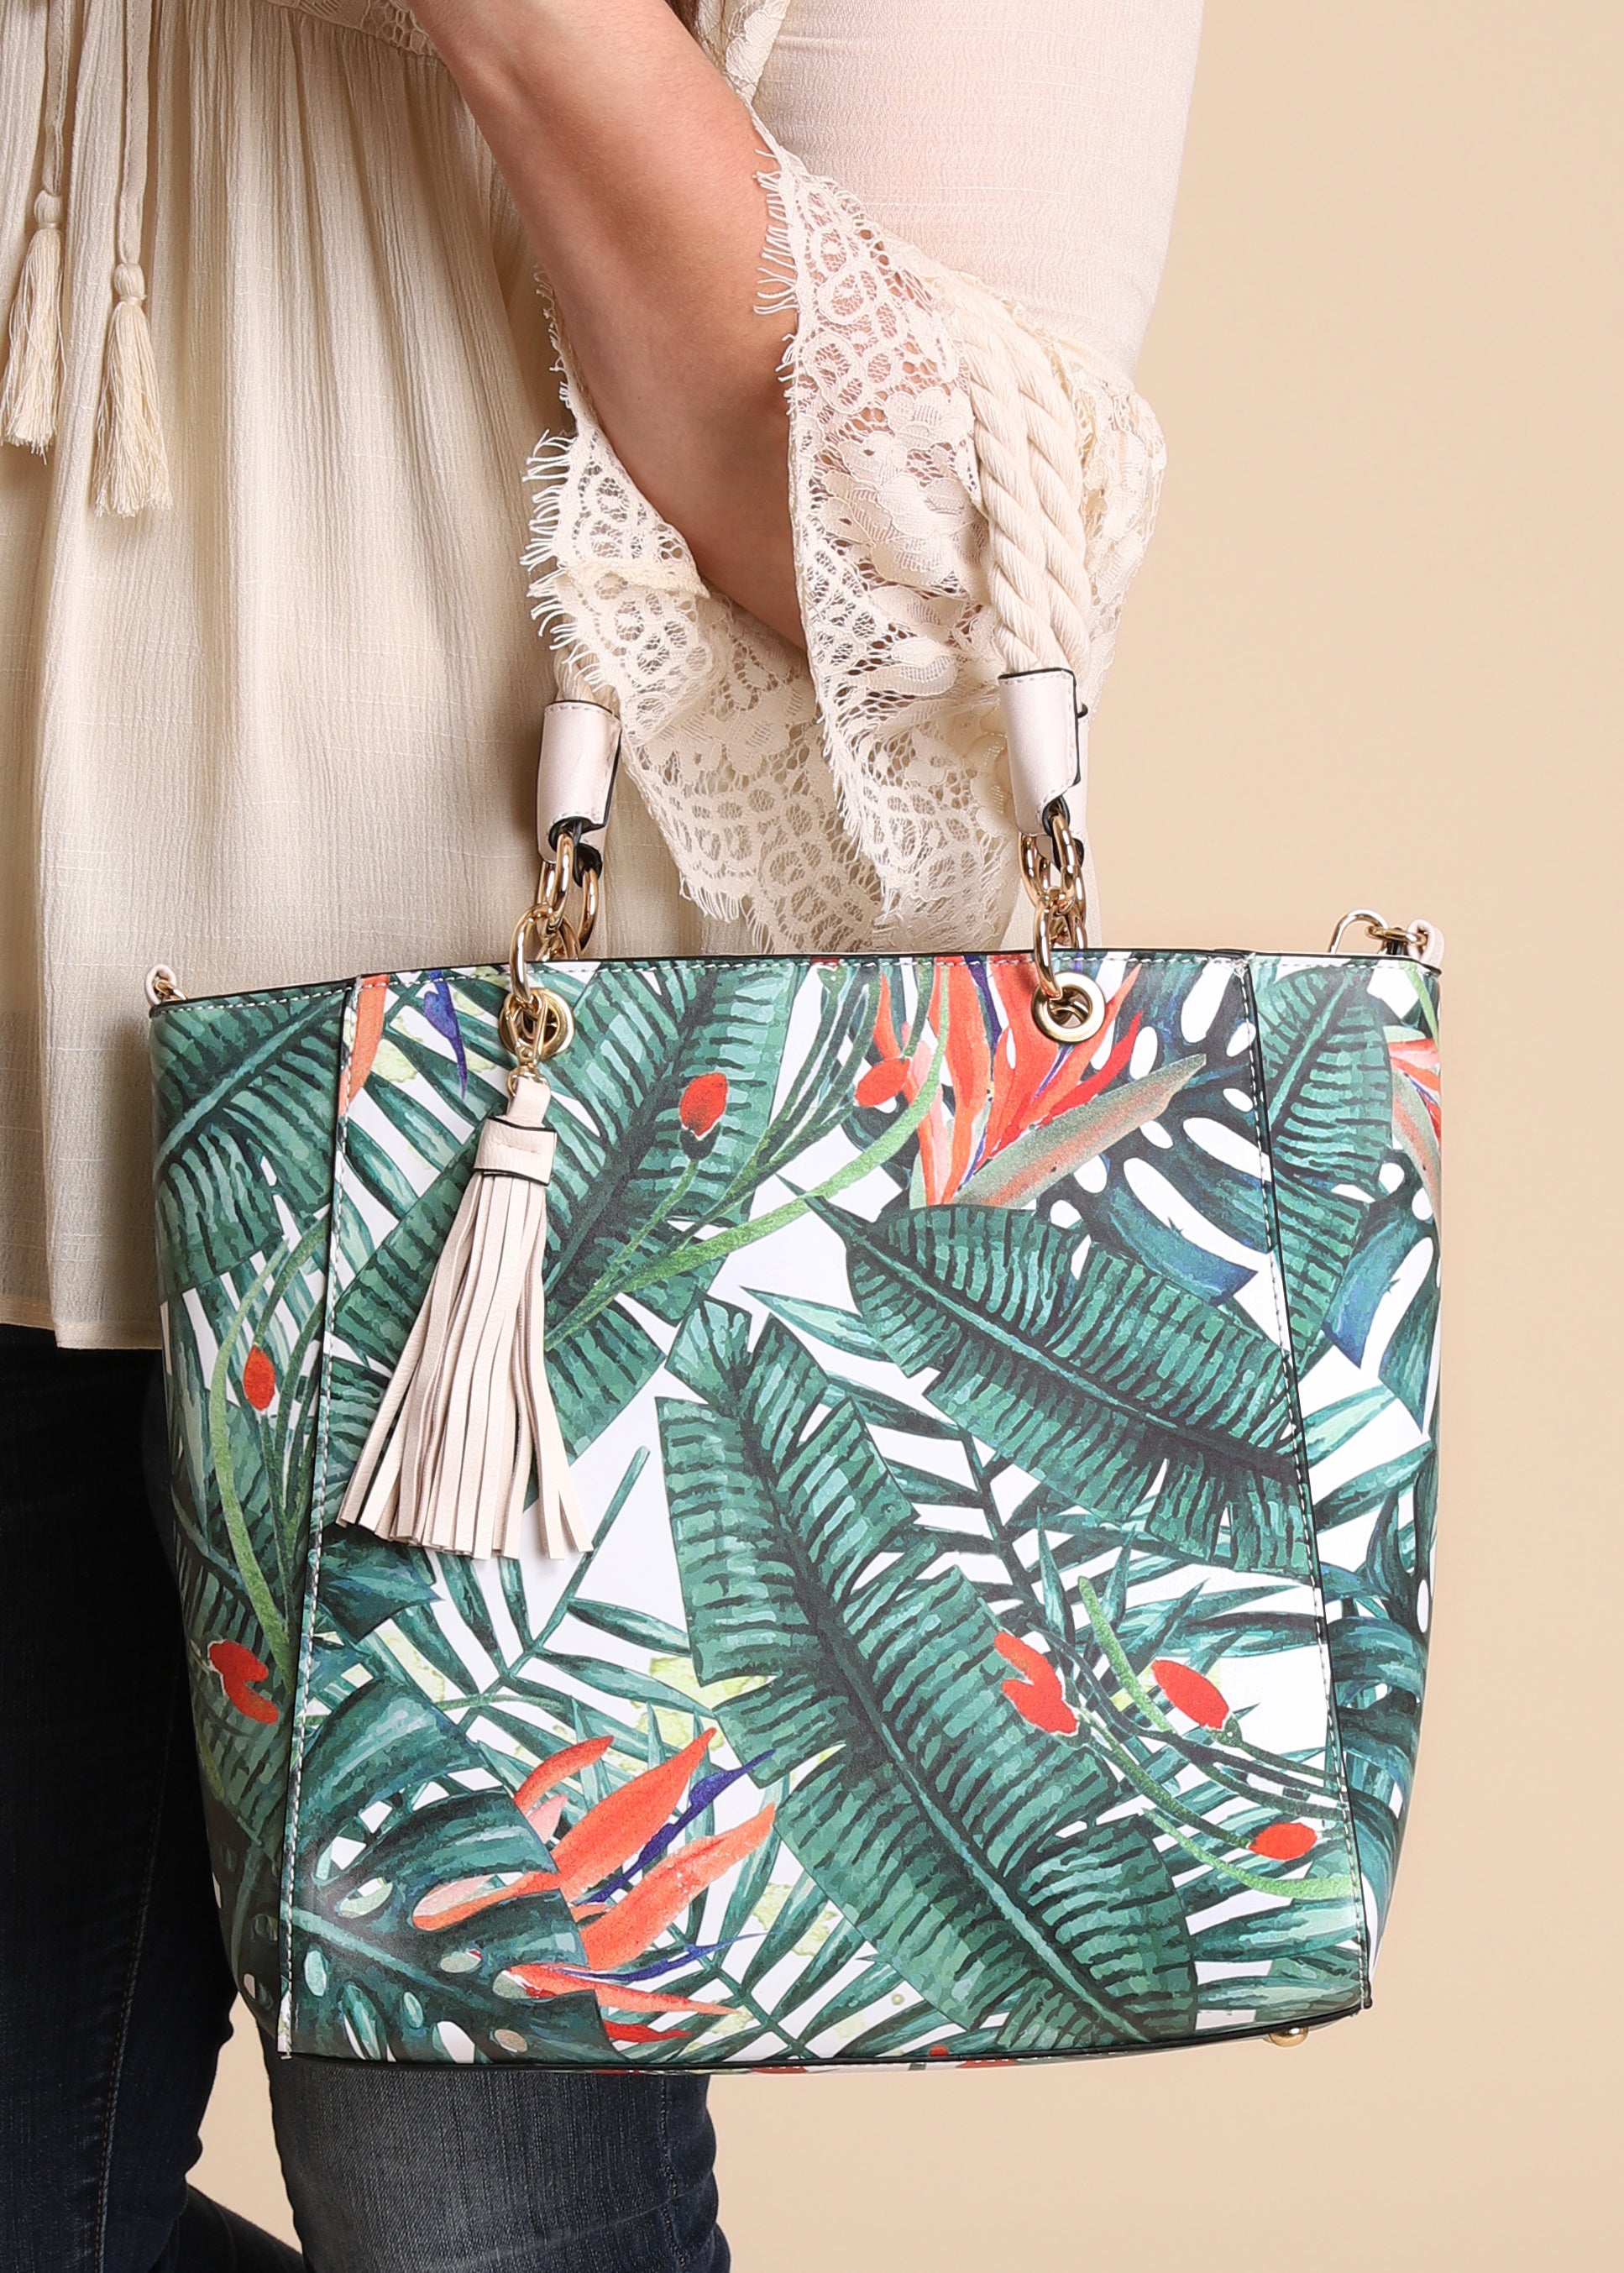 Tropic Ready Handbag - FINAL SALE